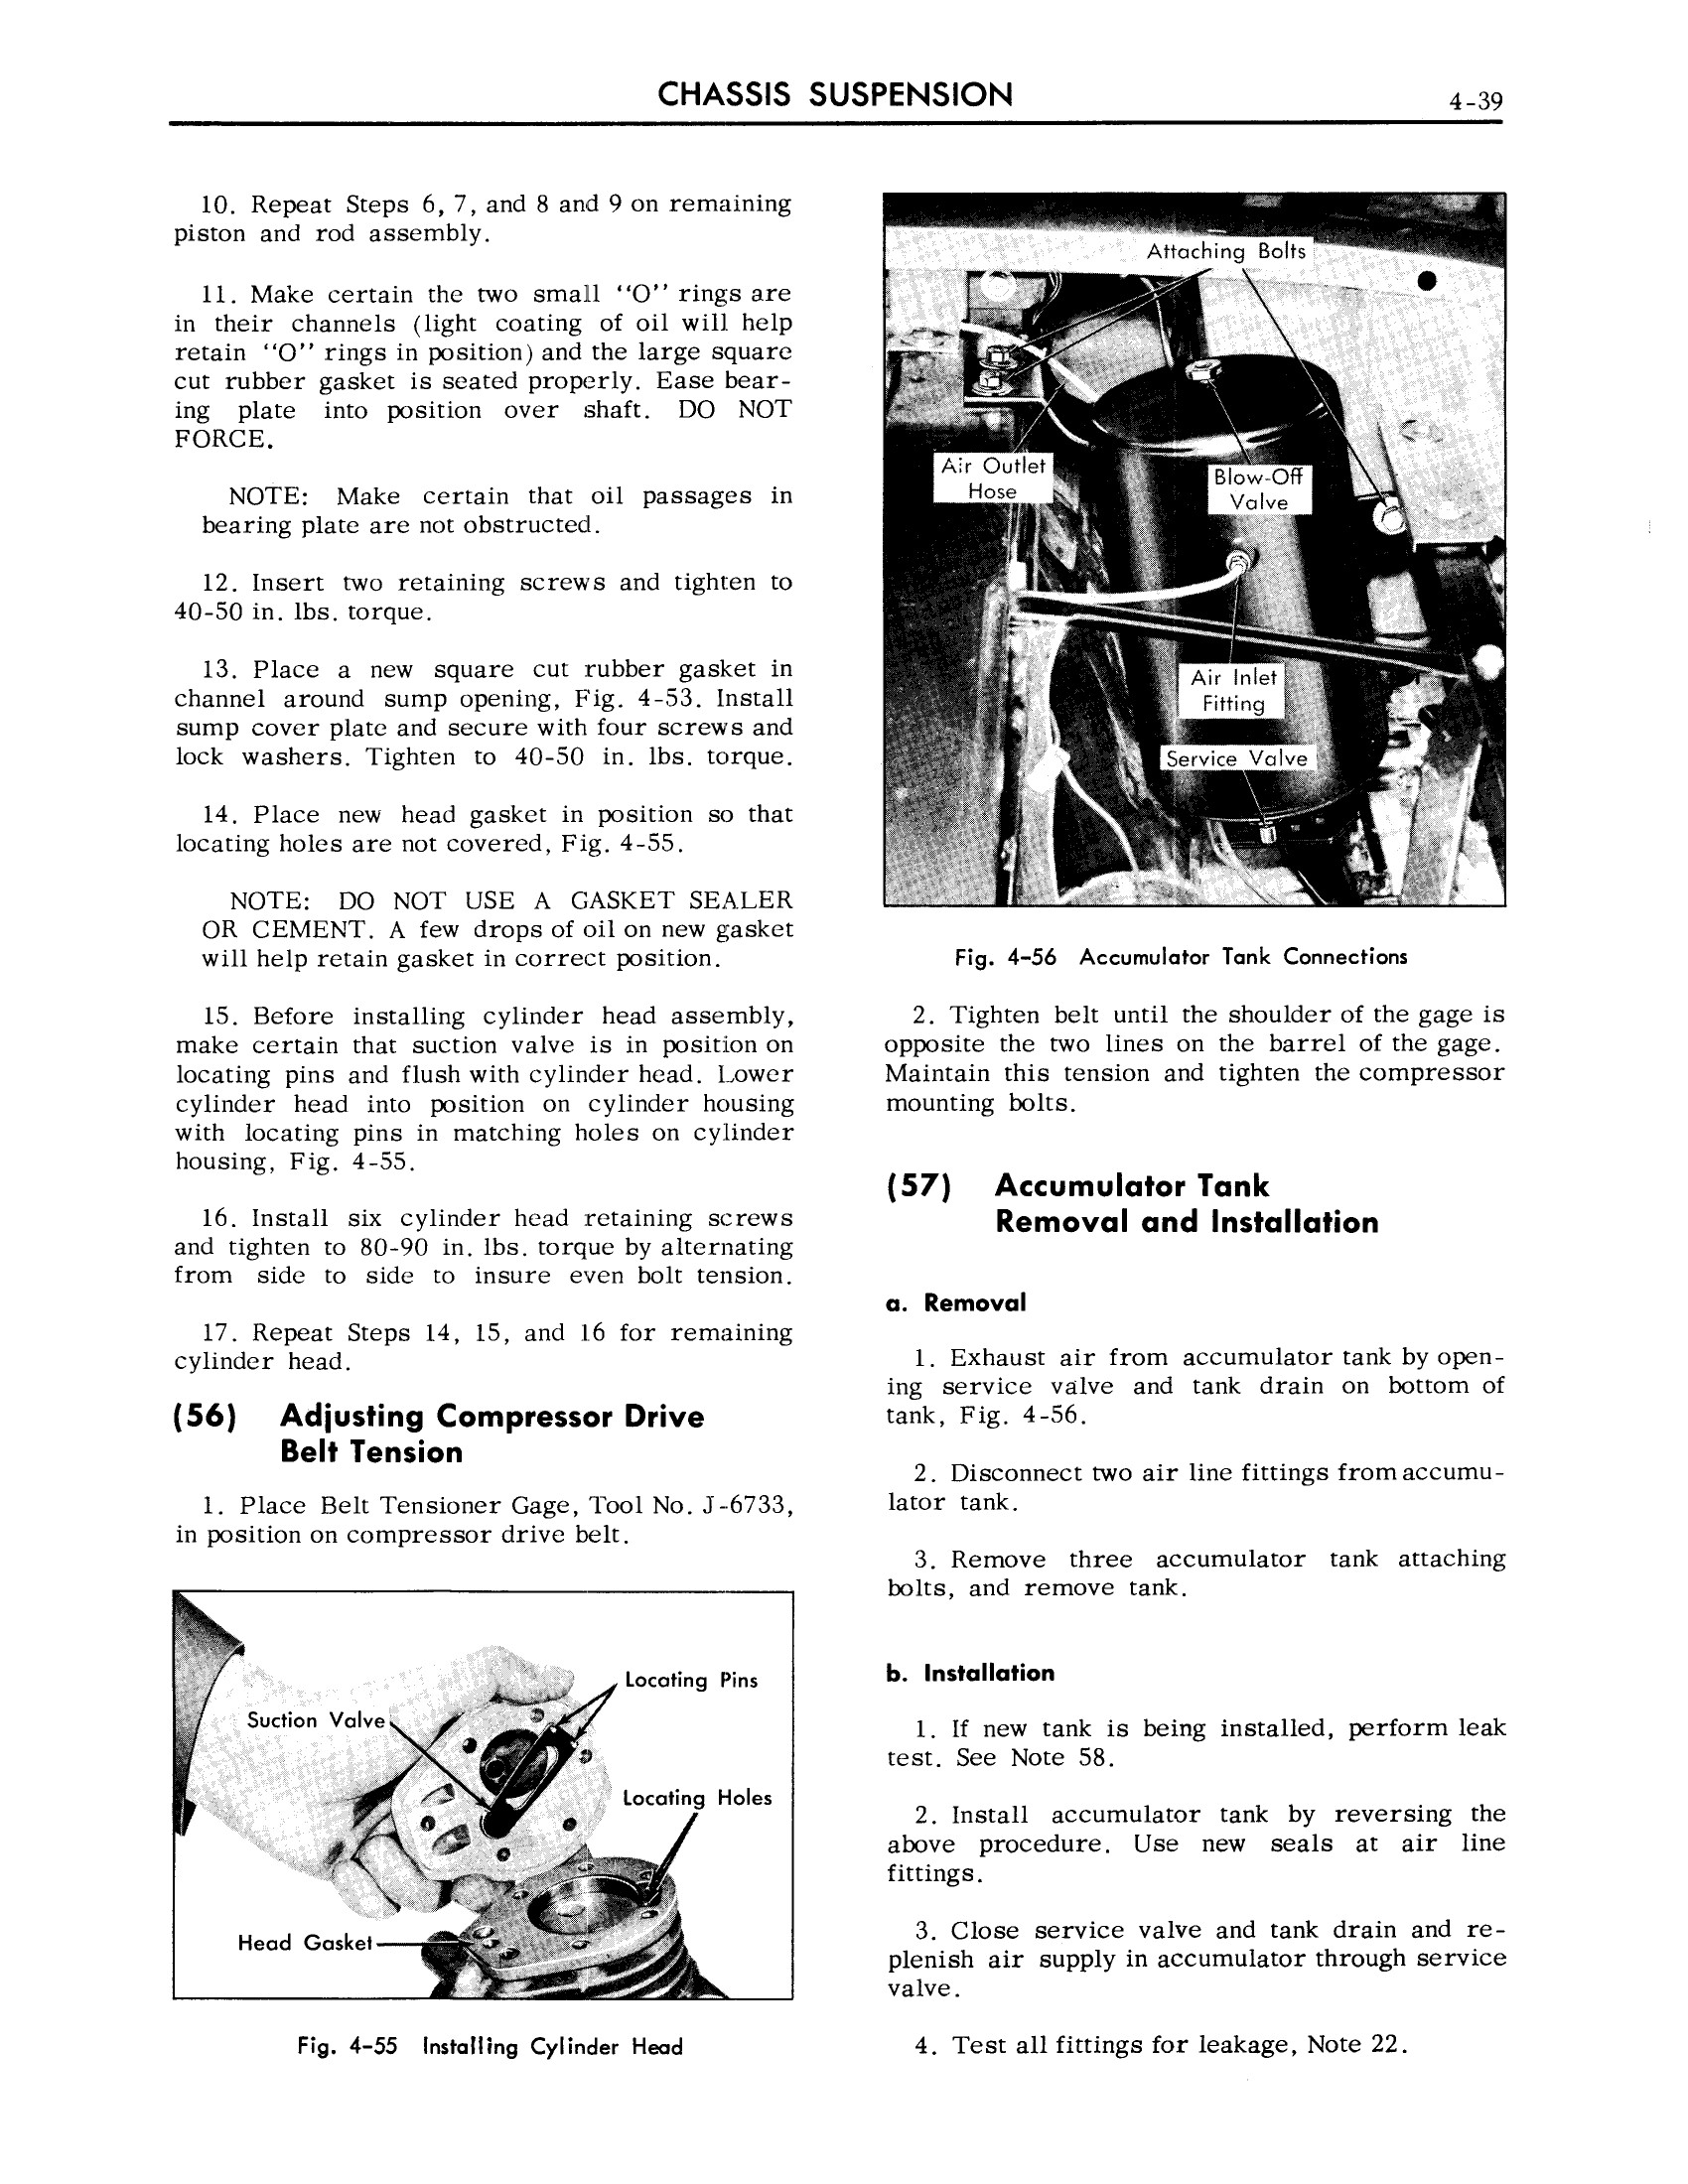 1959 Cadillac Shop Manual- Chassis Suspension Page 39 of 57